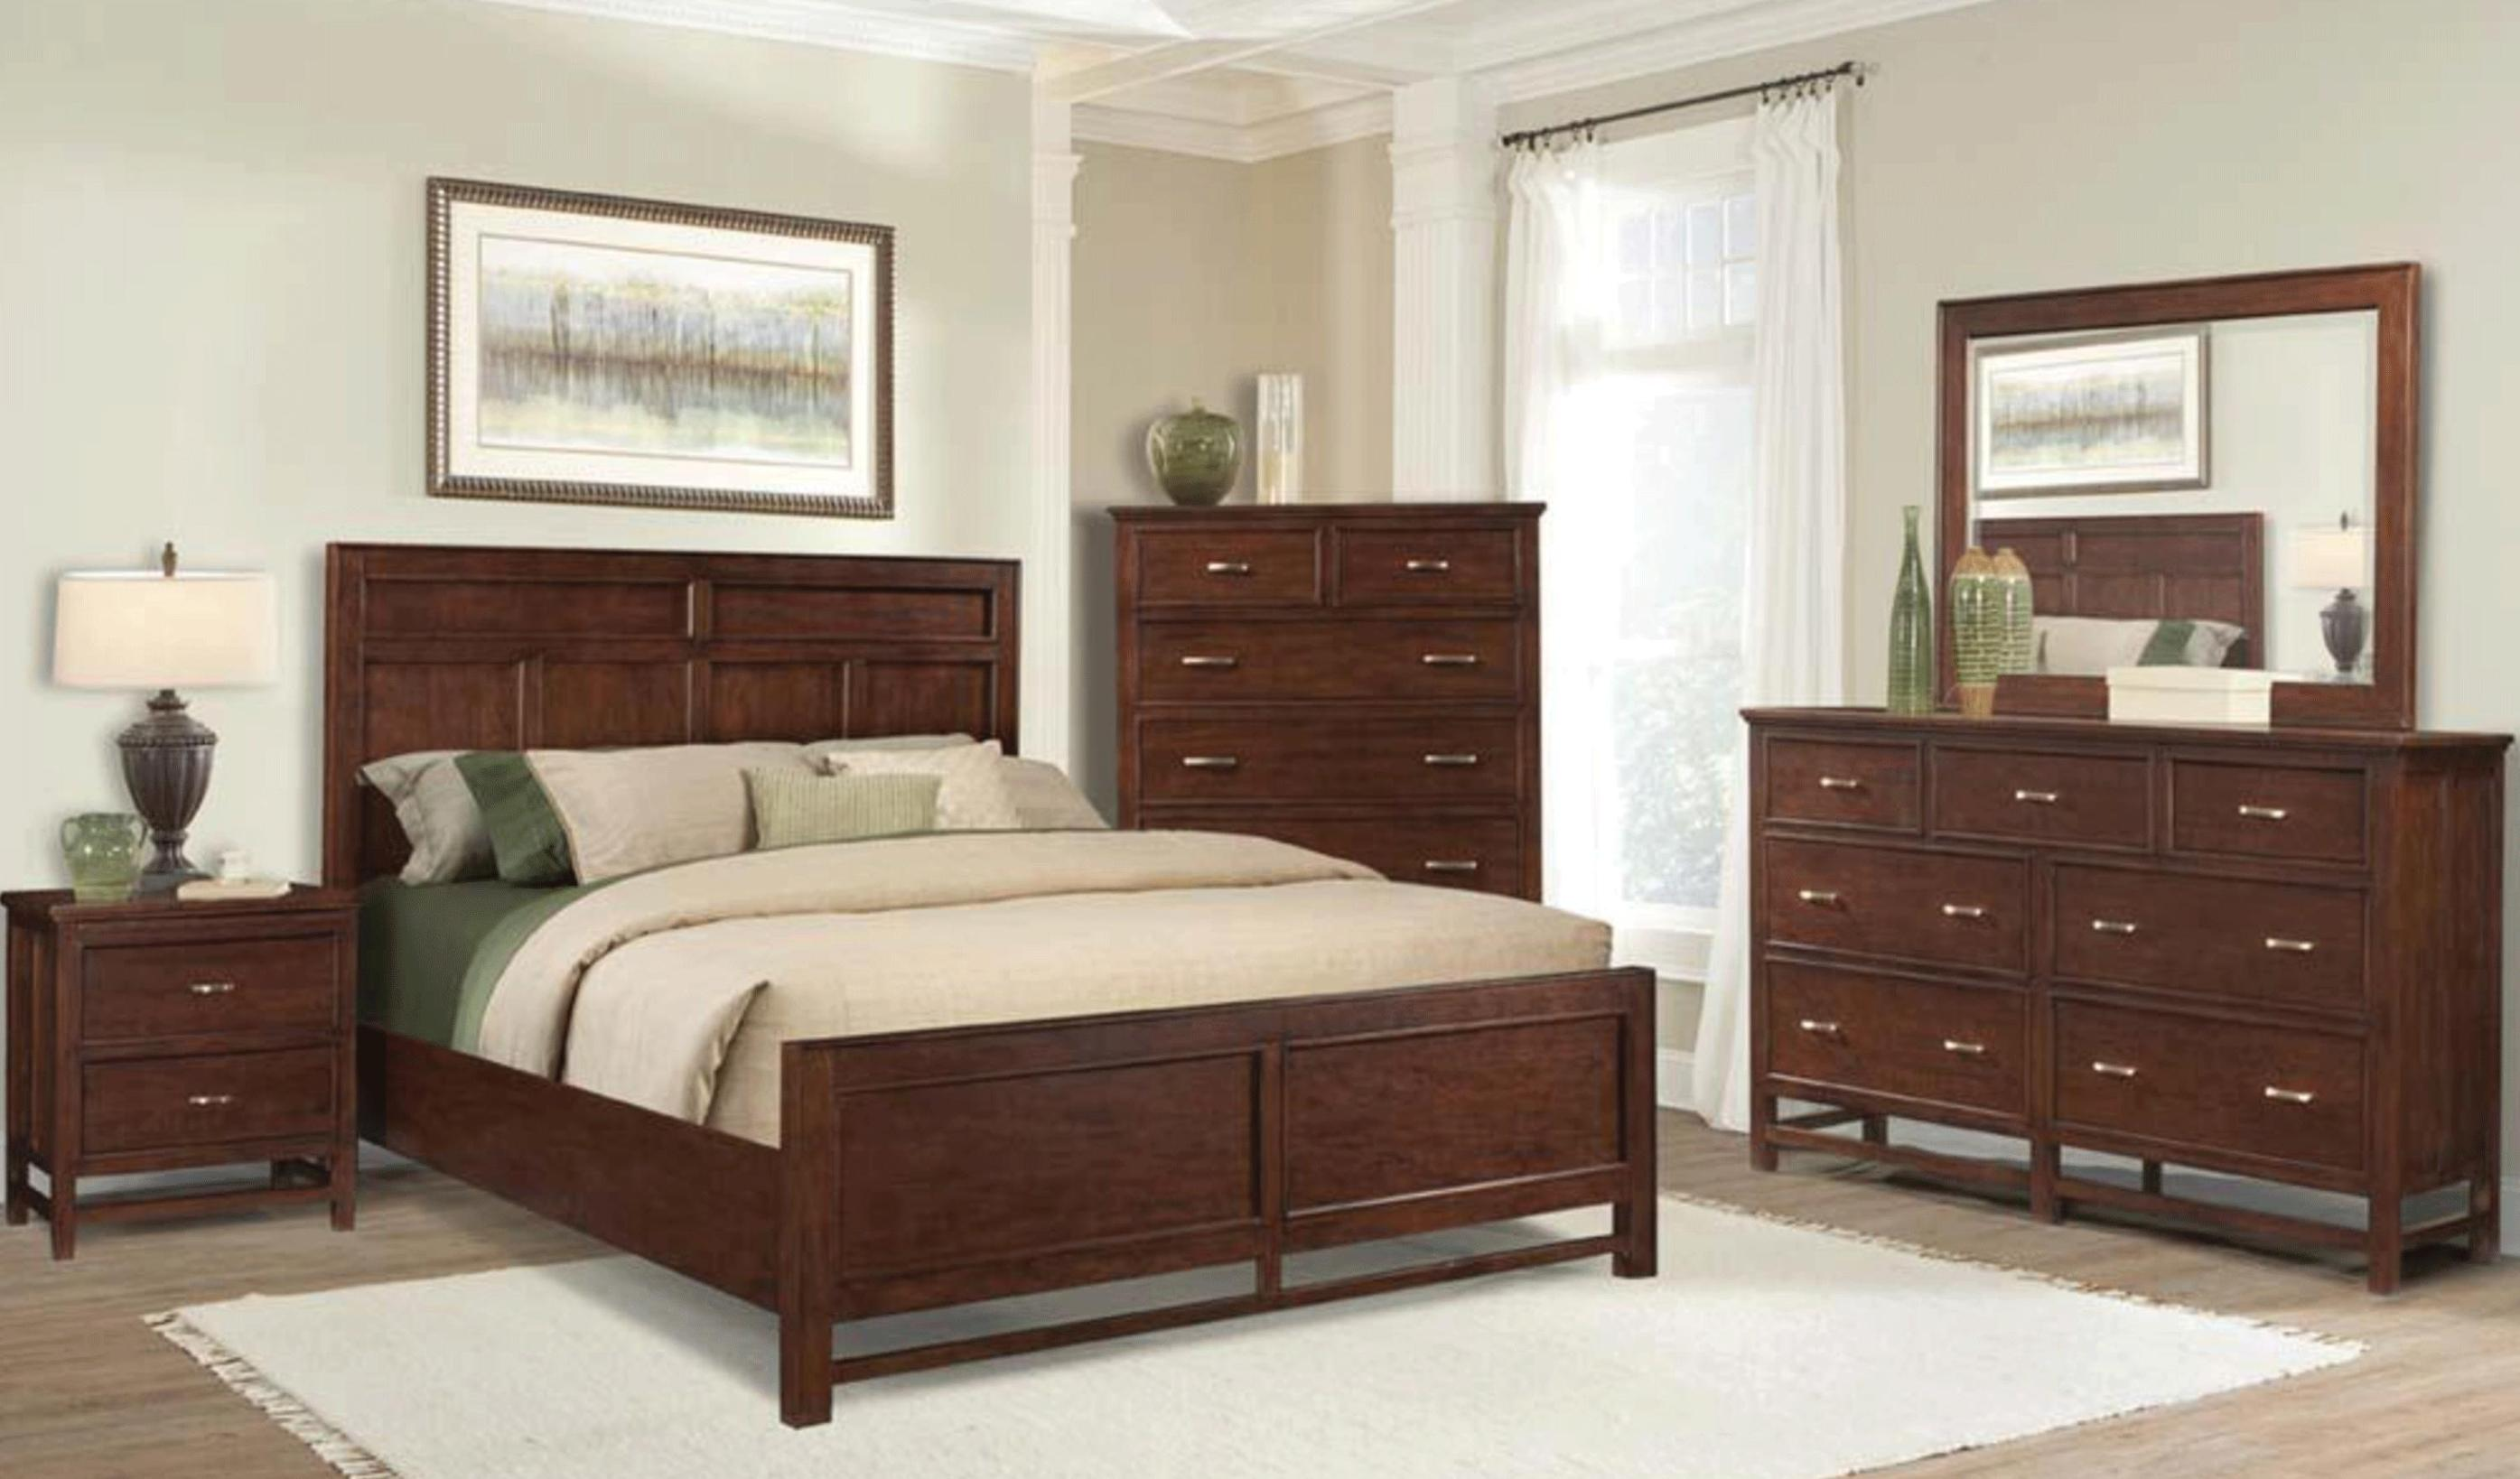 Image of: Broyhill Cherry Nightstand